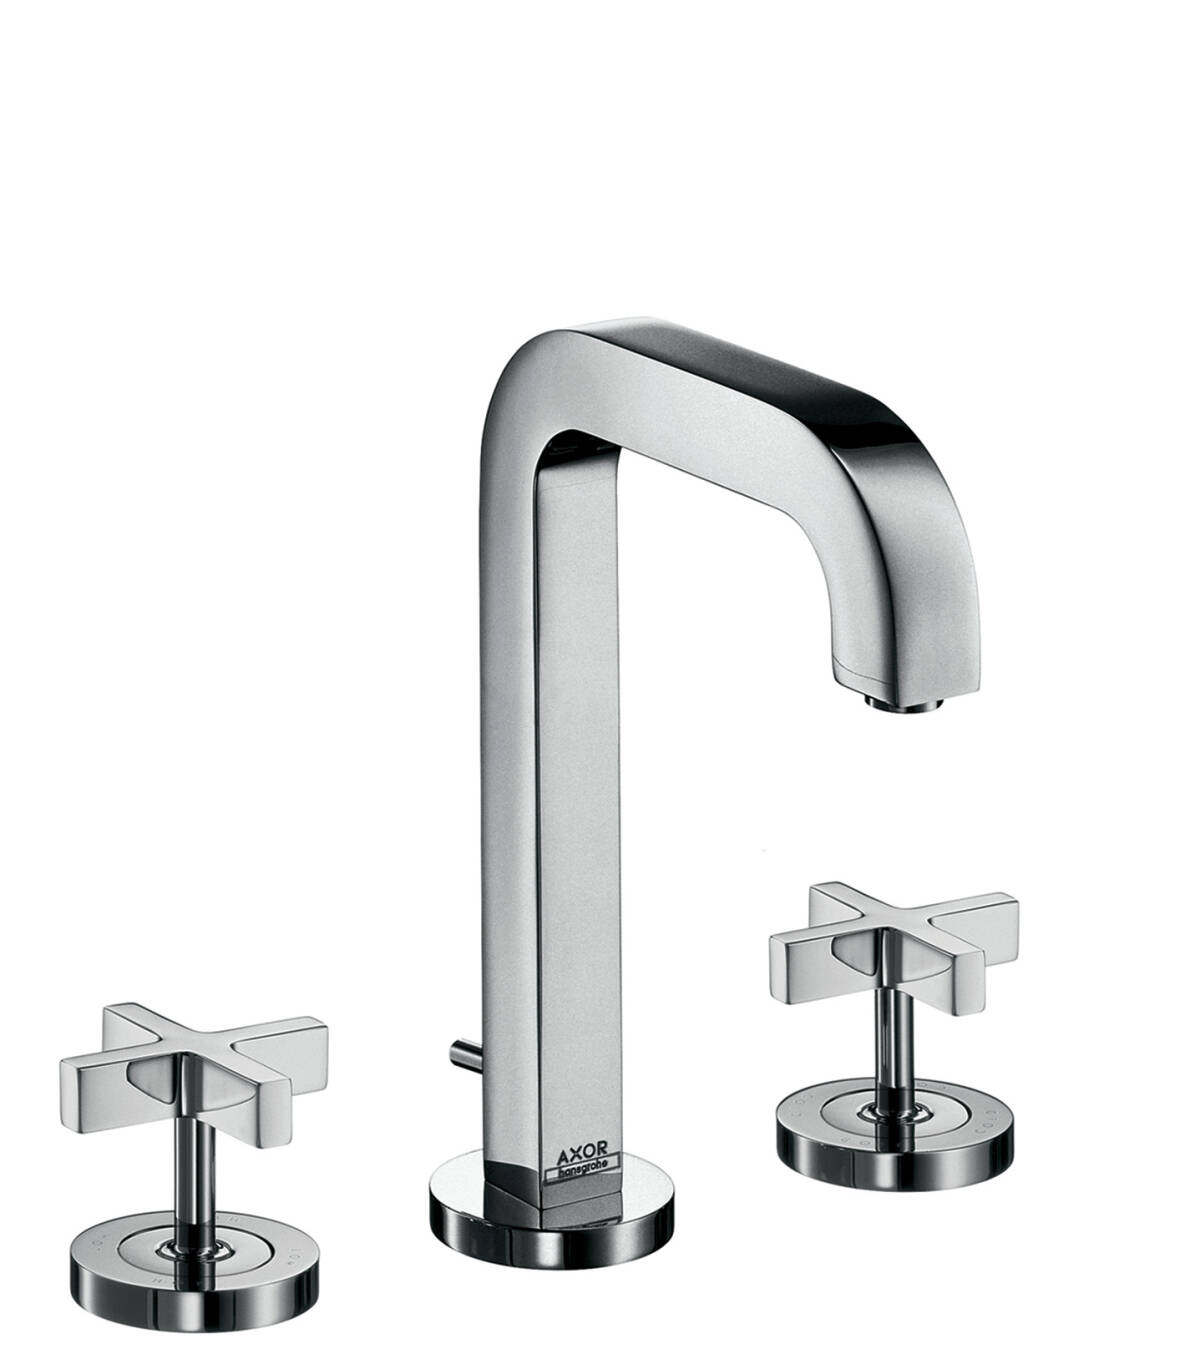 3-hole basin mixer 170 with spout 140 mm, cross handles, escutcheons and pop-up waste set, Chrome, 39133000